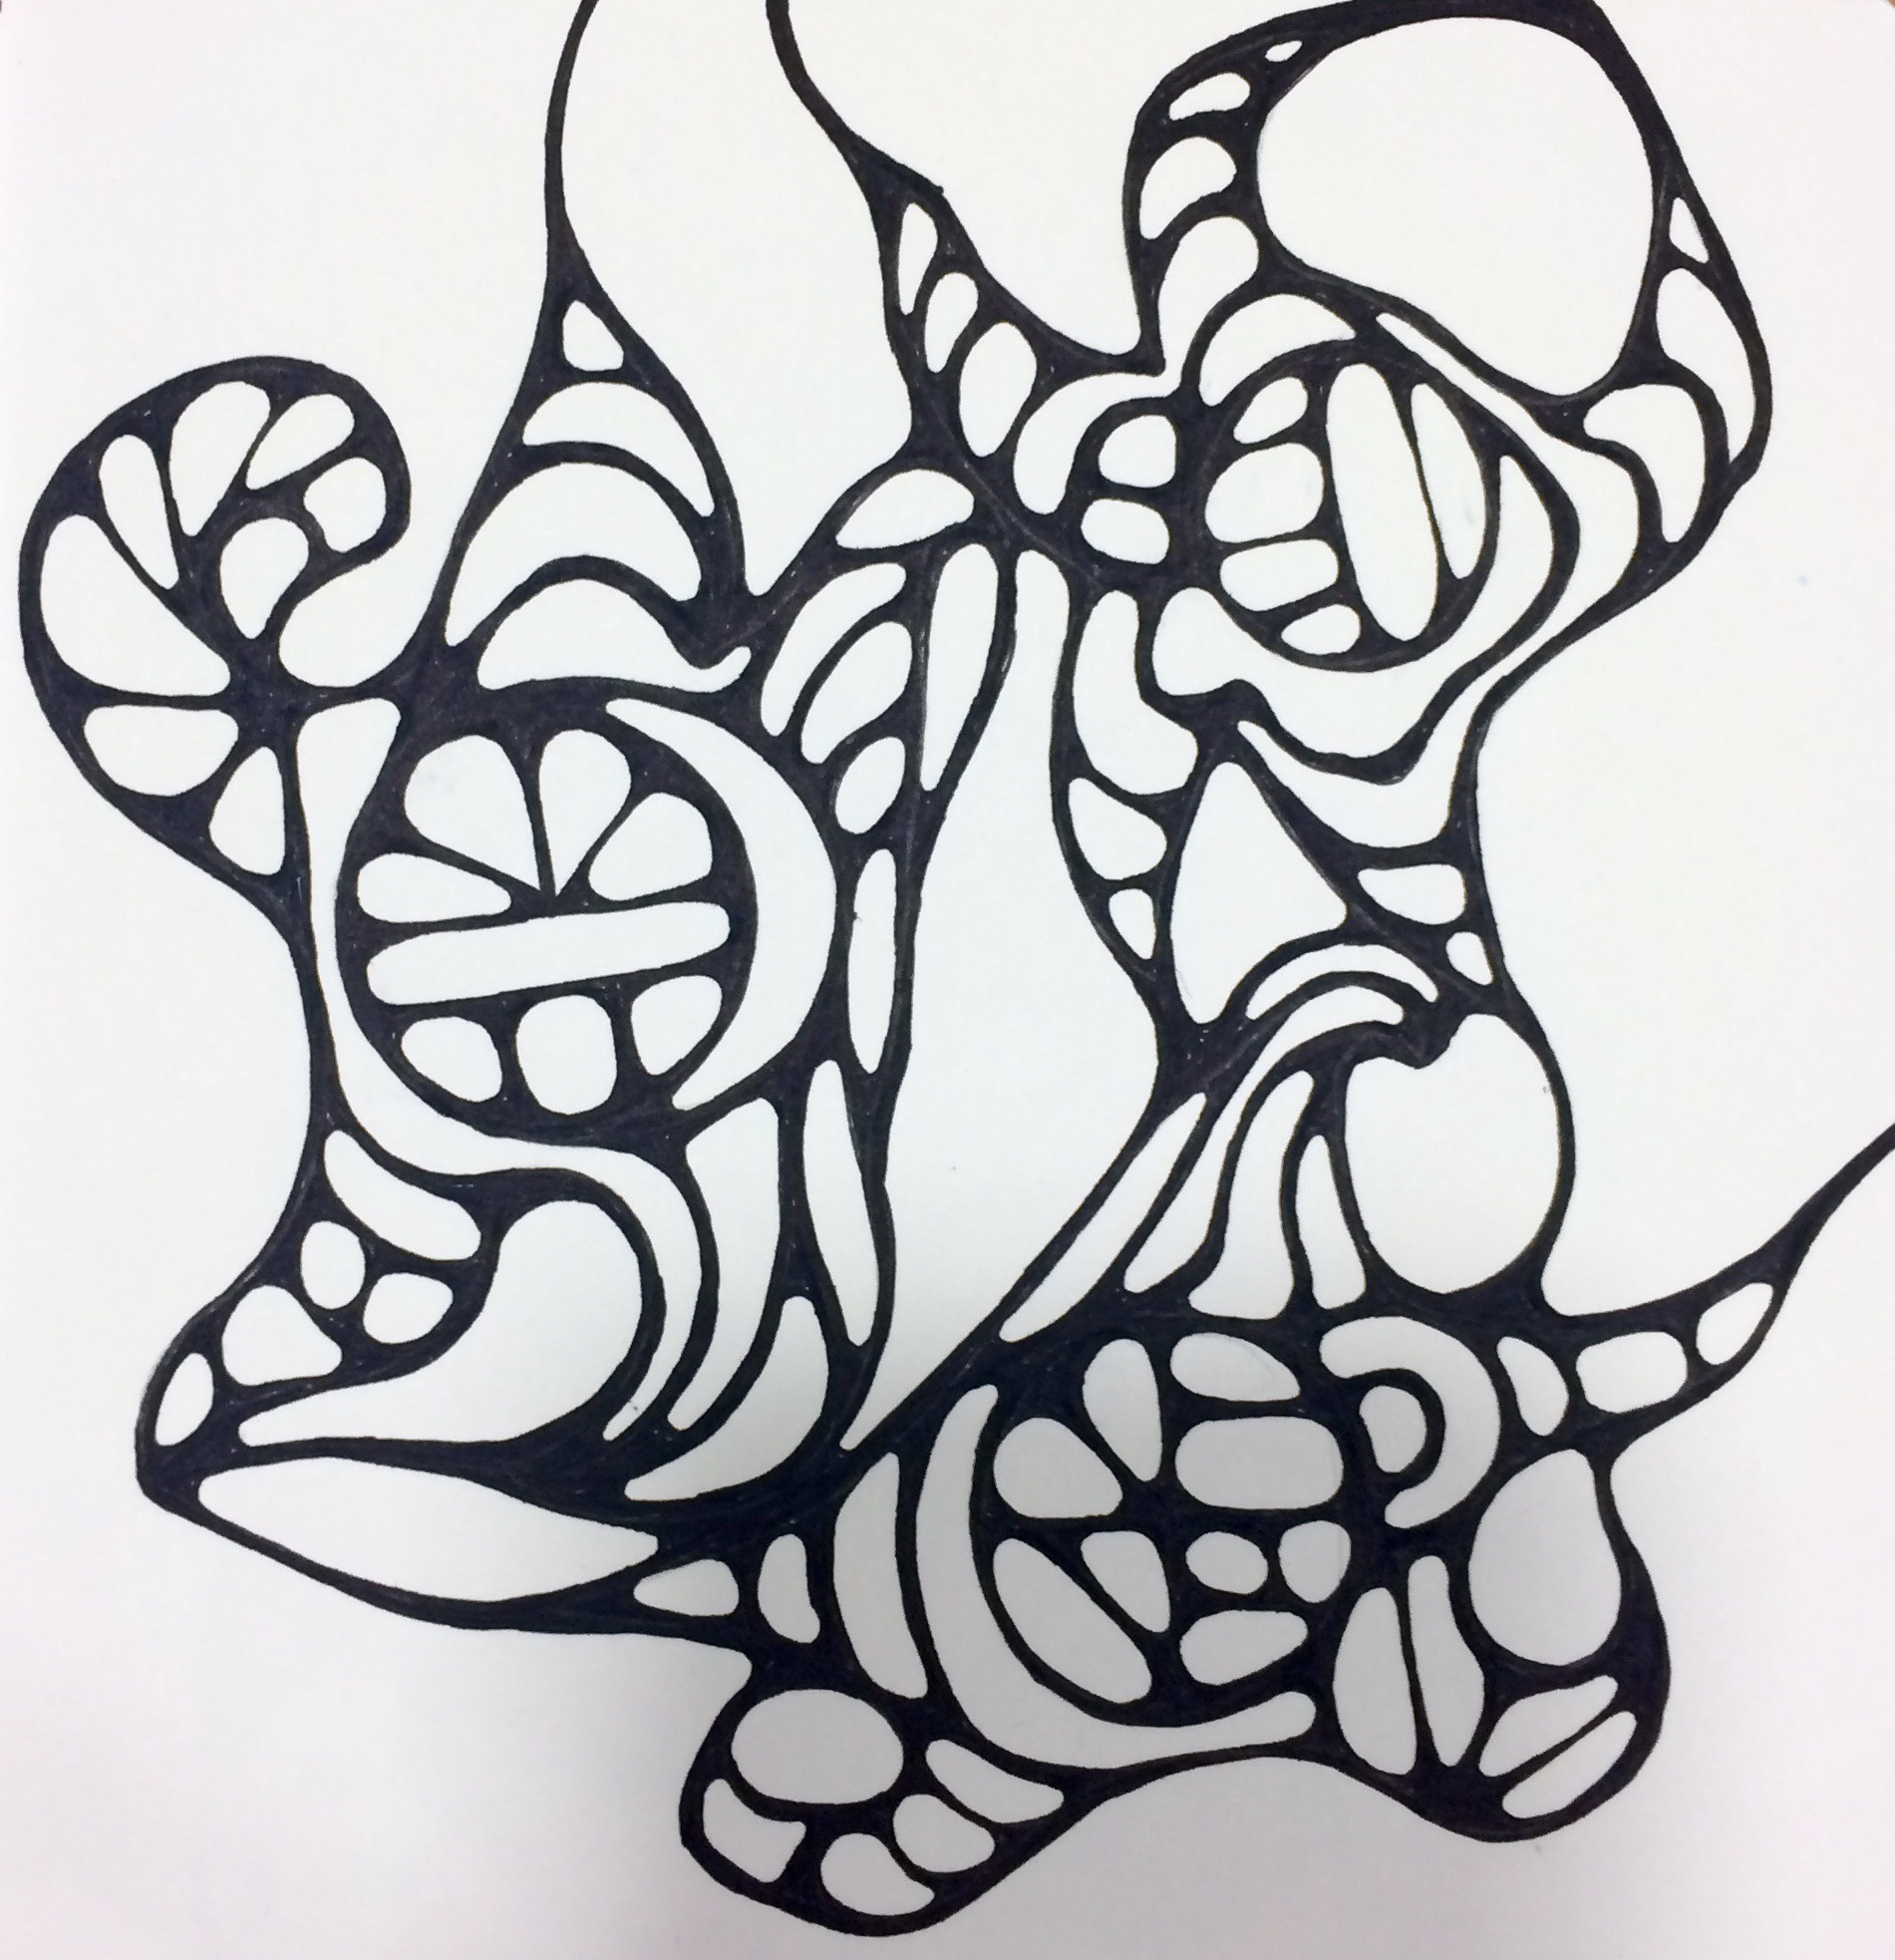 Autonomy , 2017, Ink on paper, 5.75 in x 5.75 in